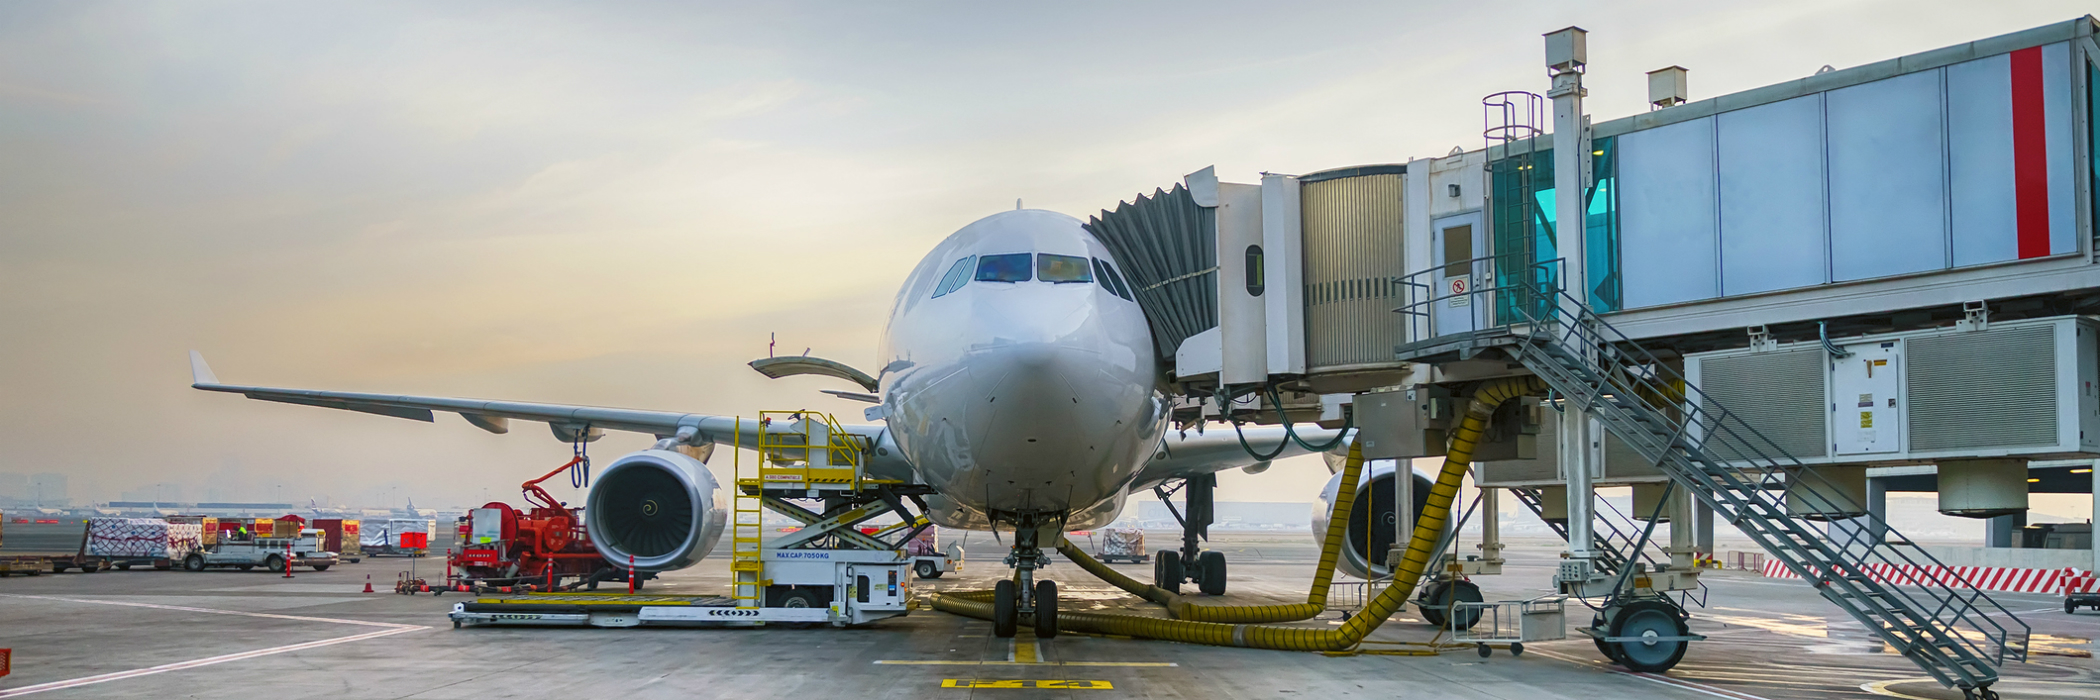 Airliner being prepared for flight